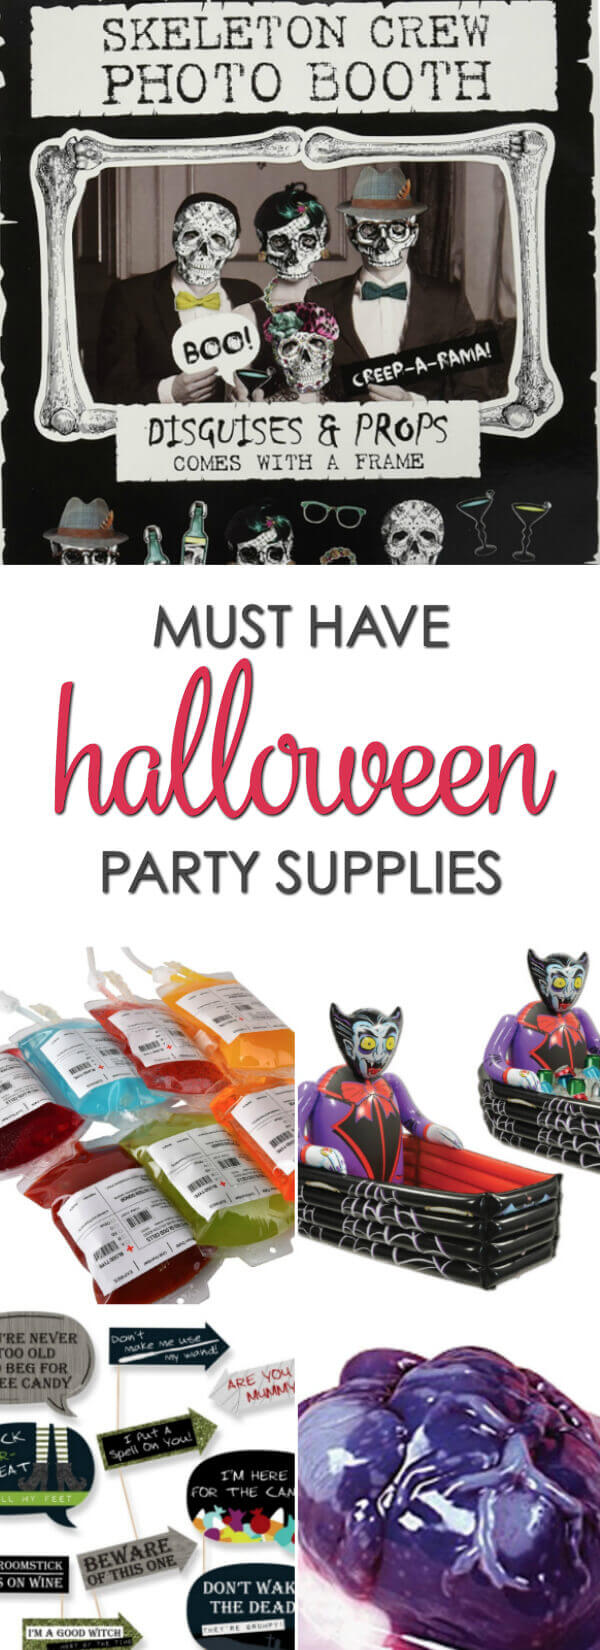 Must Have Halloween Party Supplies - everything you need to throw the best Halloween party